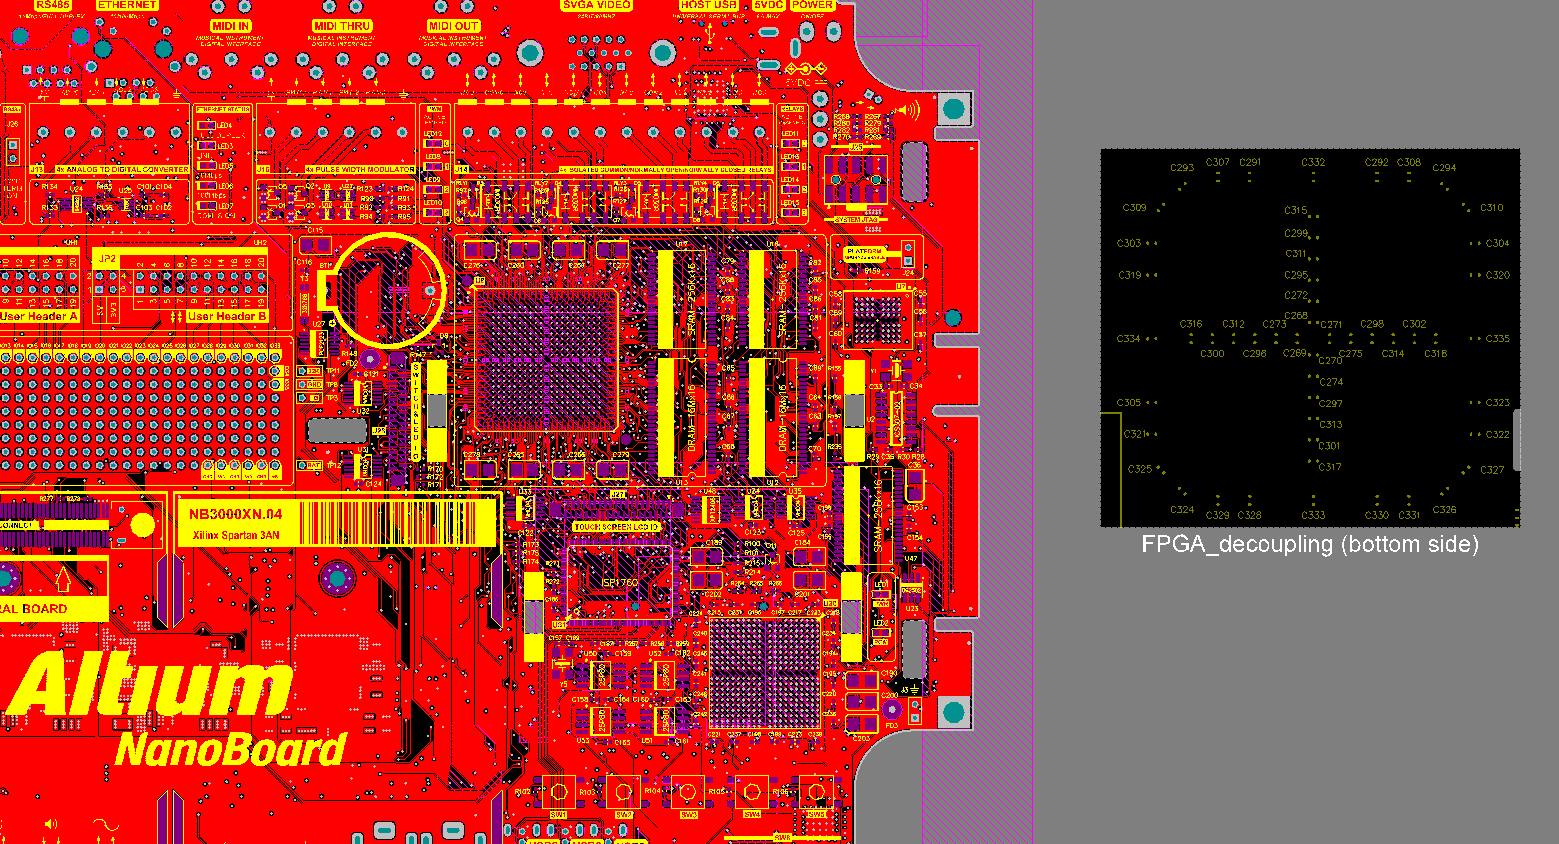 How To Open Pcb File In Altium